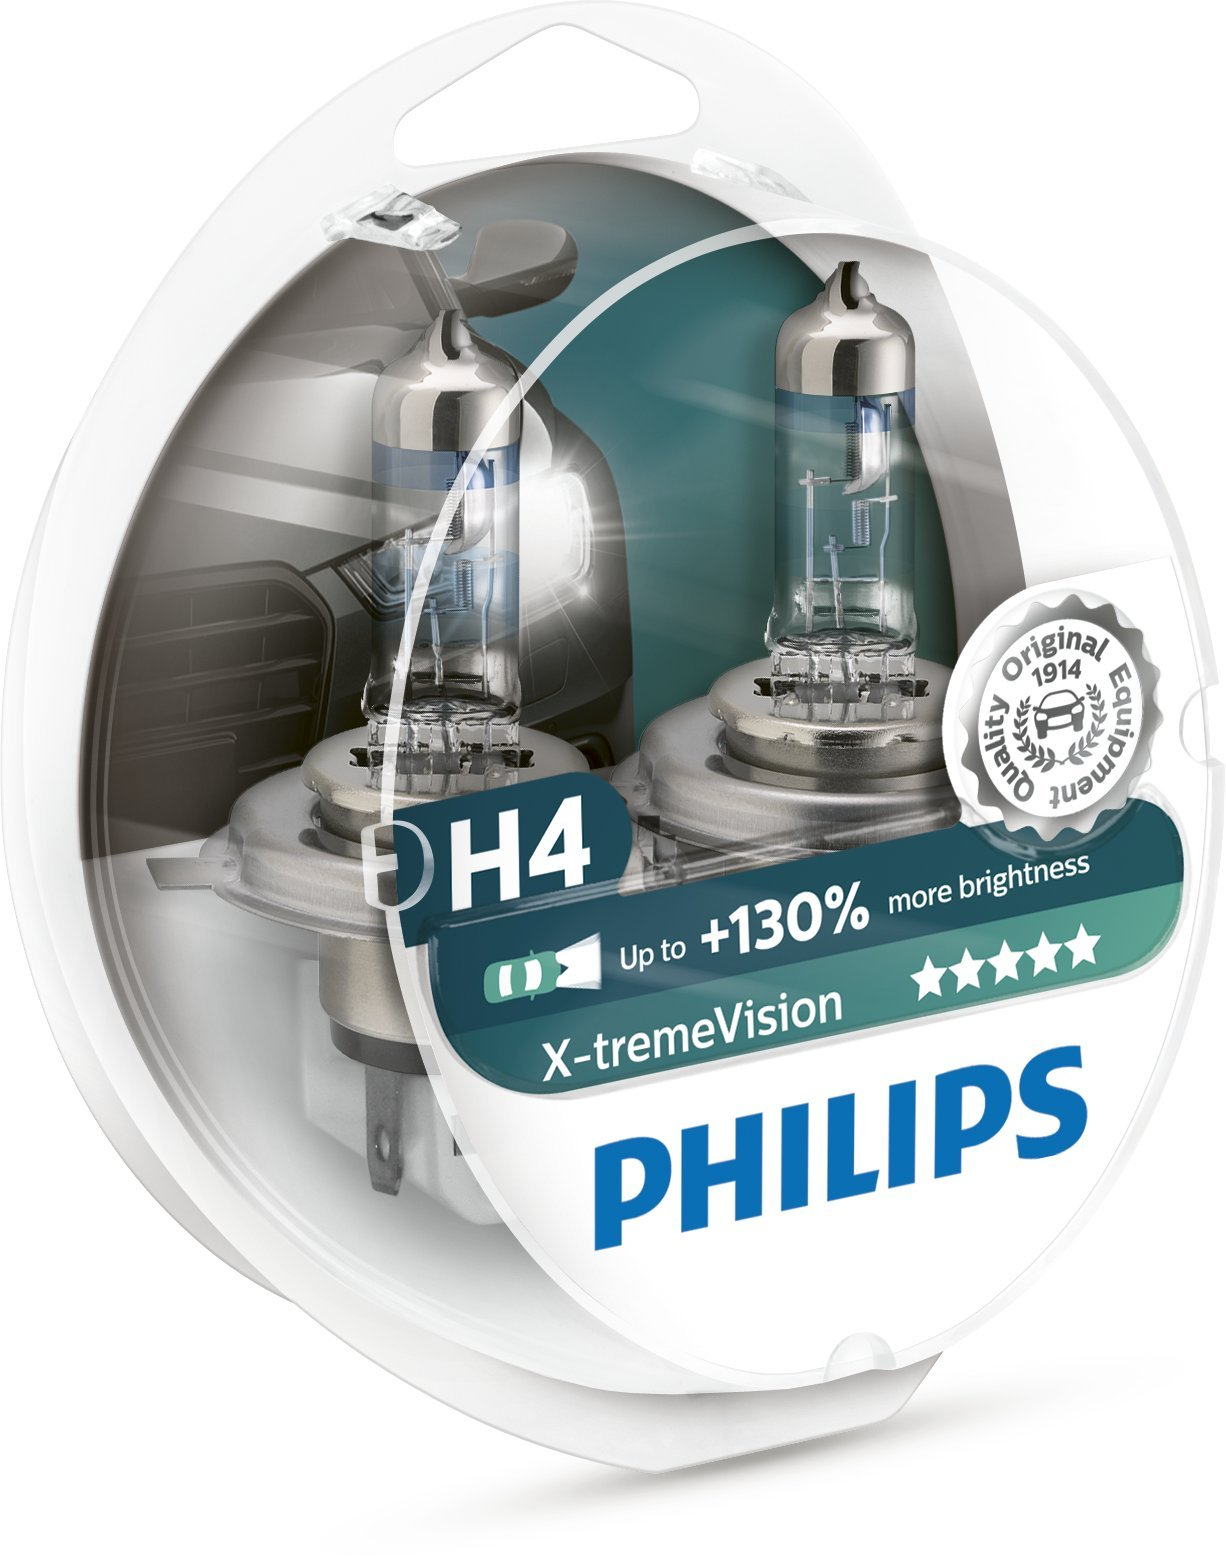 philips x-treme vision +130% headlight bulbs (pack of 2) - 71iT25L0dWL - Philips X-treme Vision +130% Headlight Bulbs (Pack of 2)